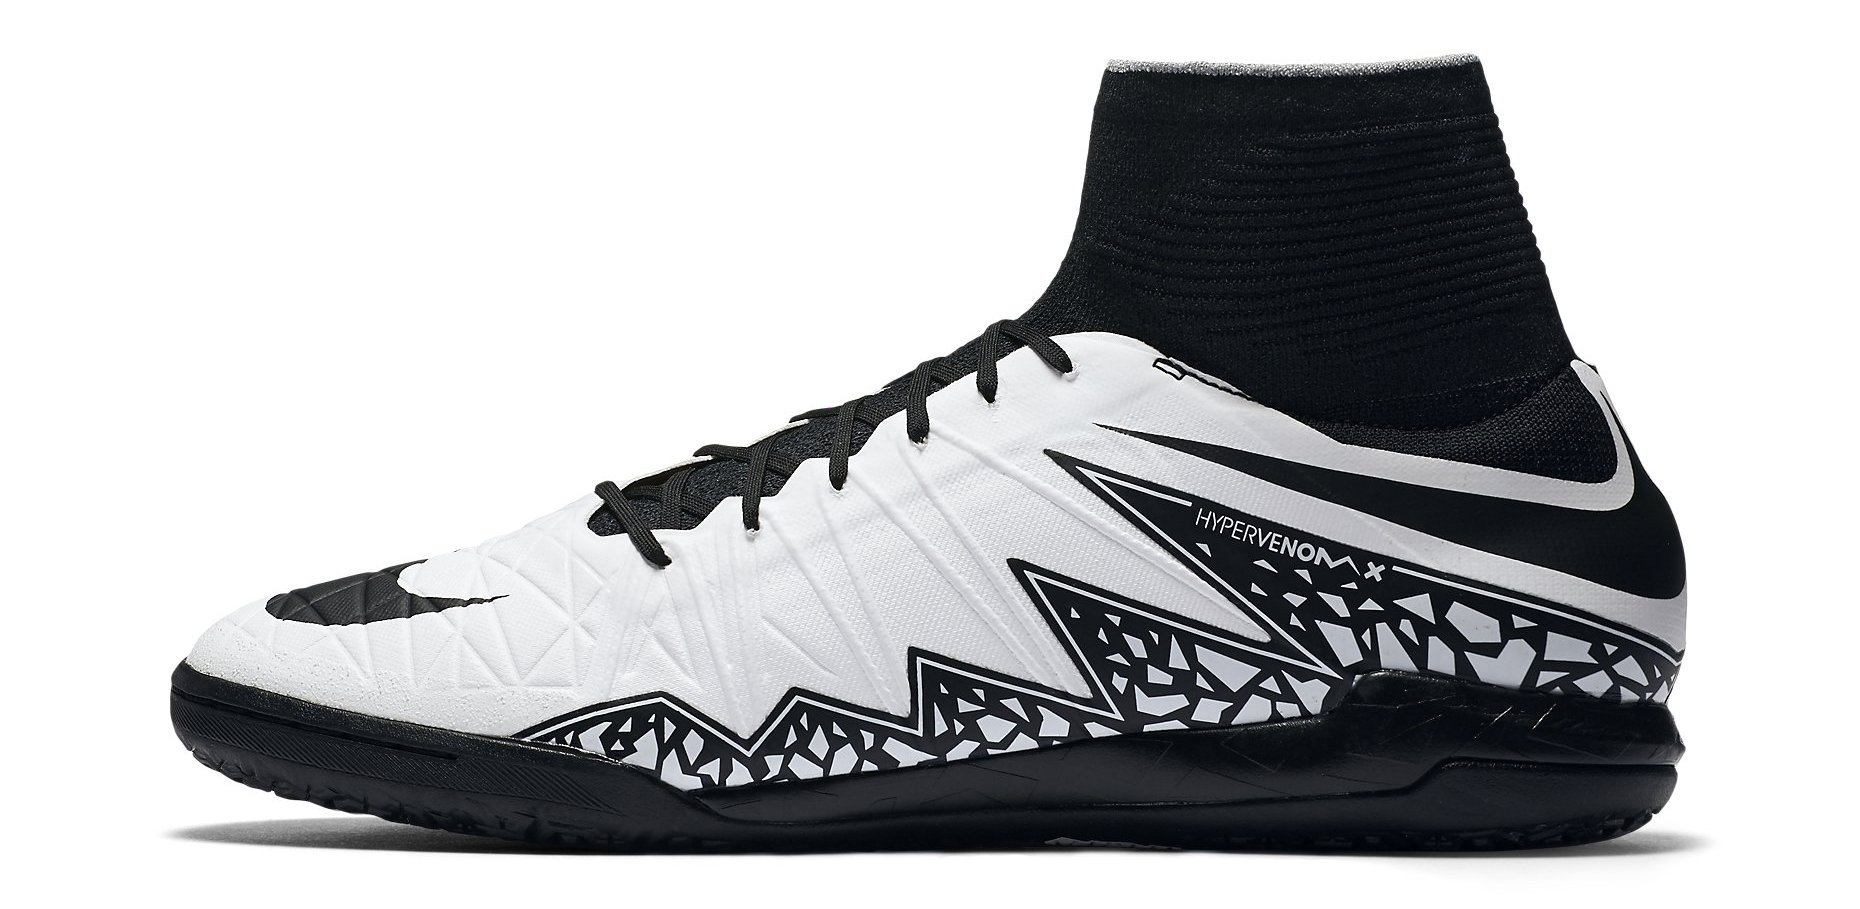 a34d549e6 Indoor court shoes Nike HYPERVENOMX PROXIMO IC - Top4Football.com